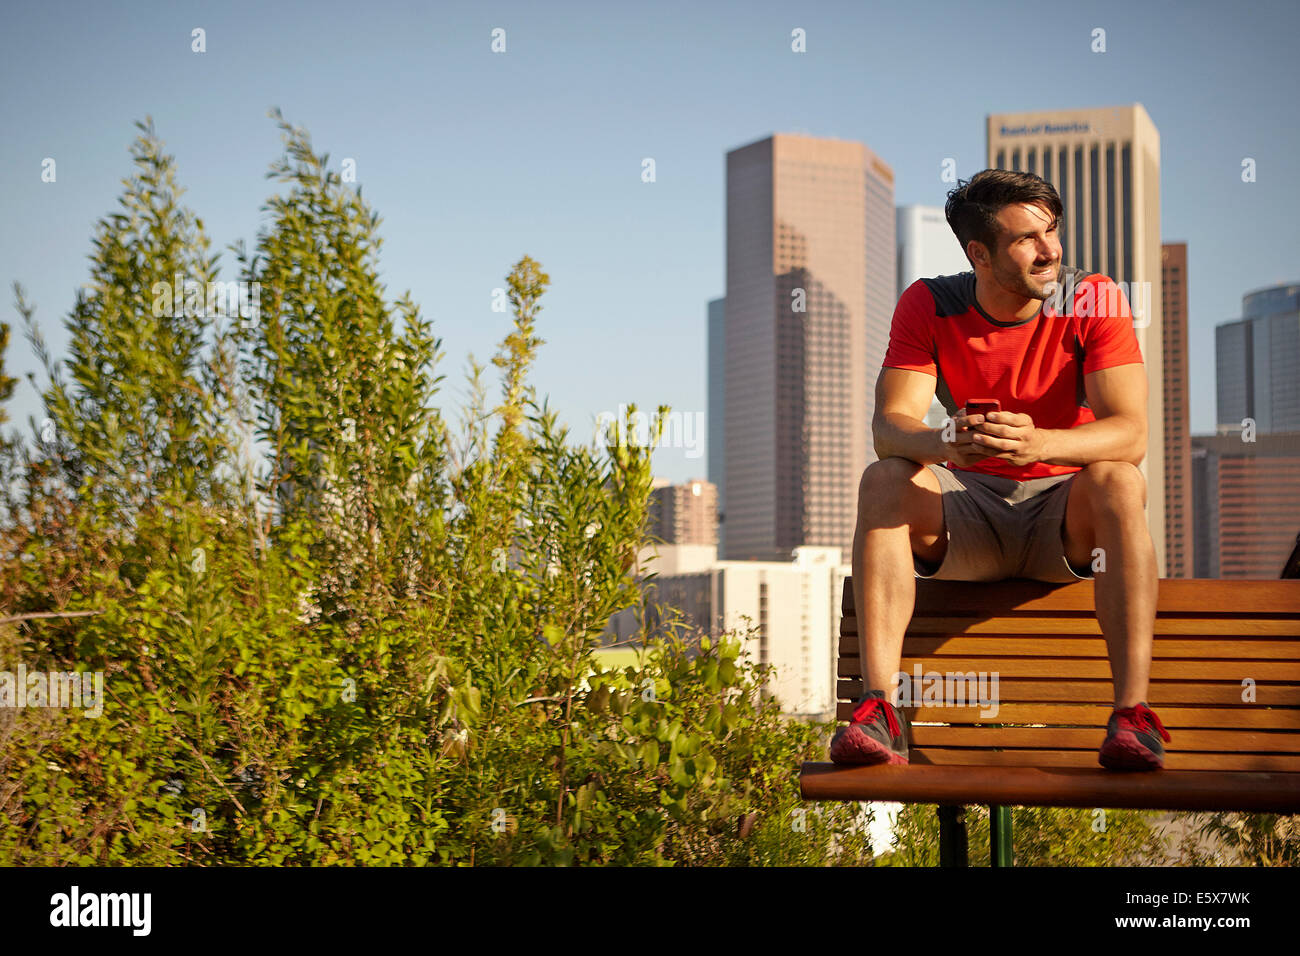 Young male runner Taking a break on park bench Photo Stock